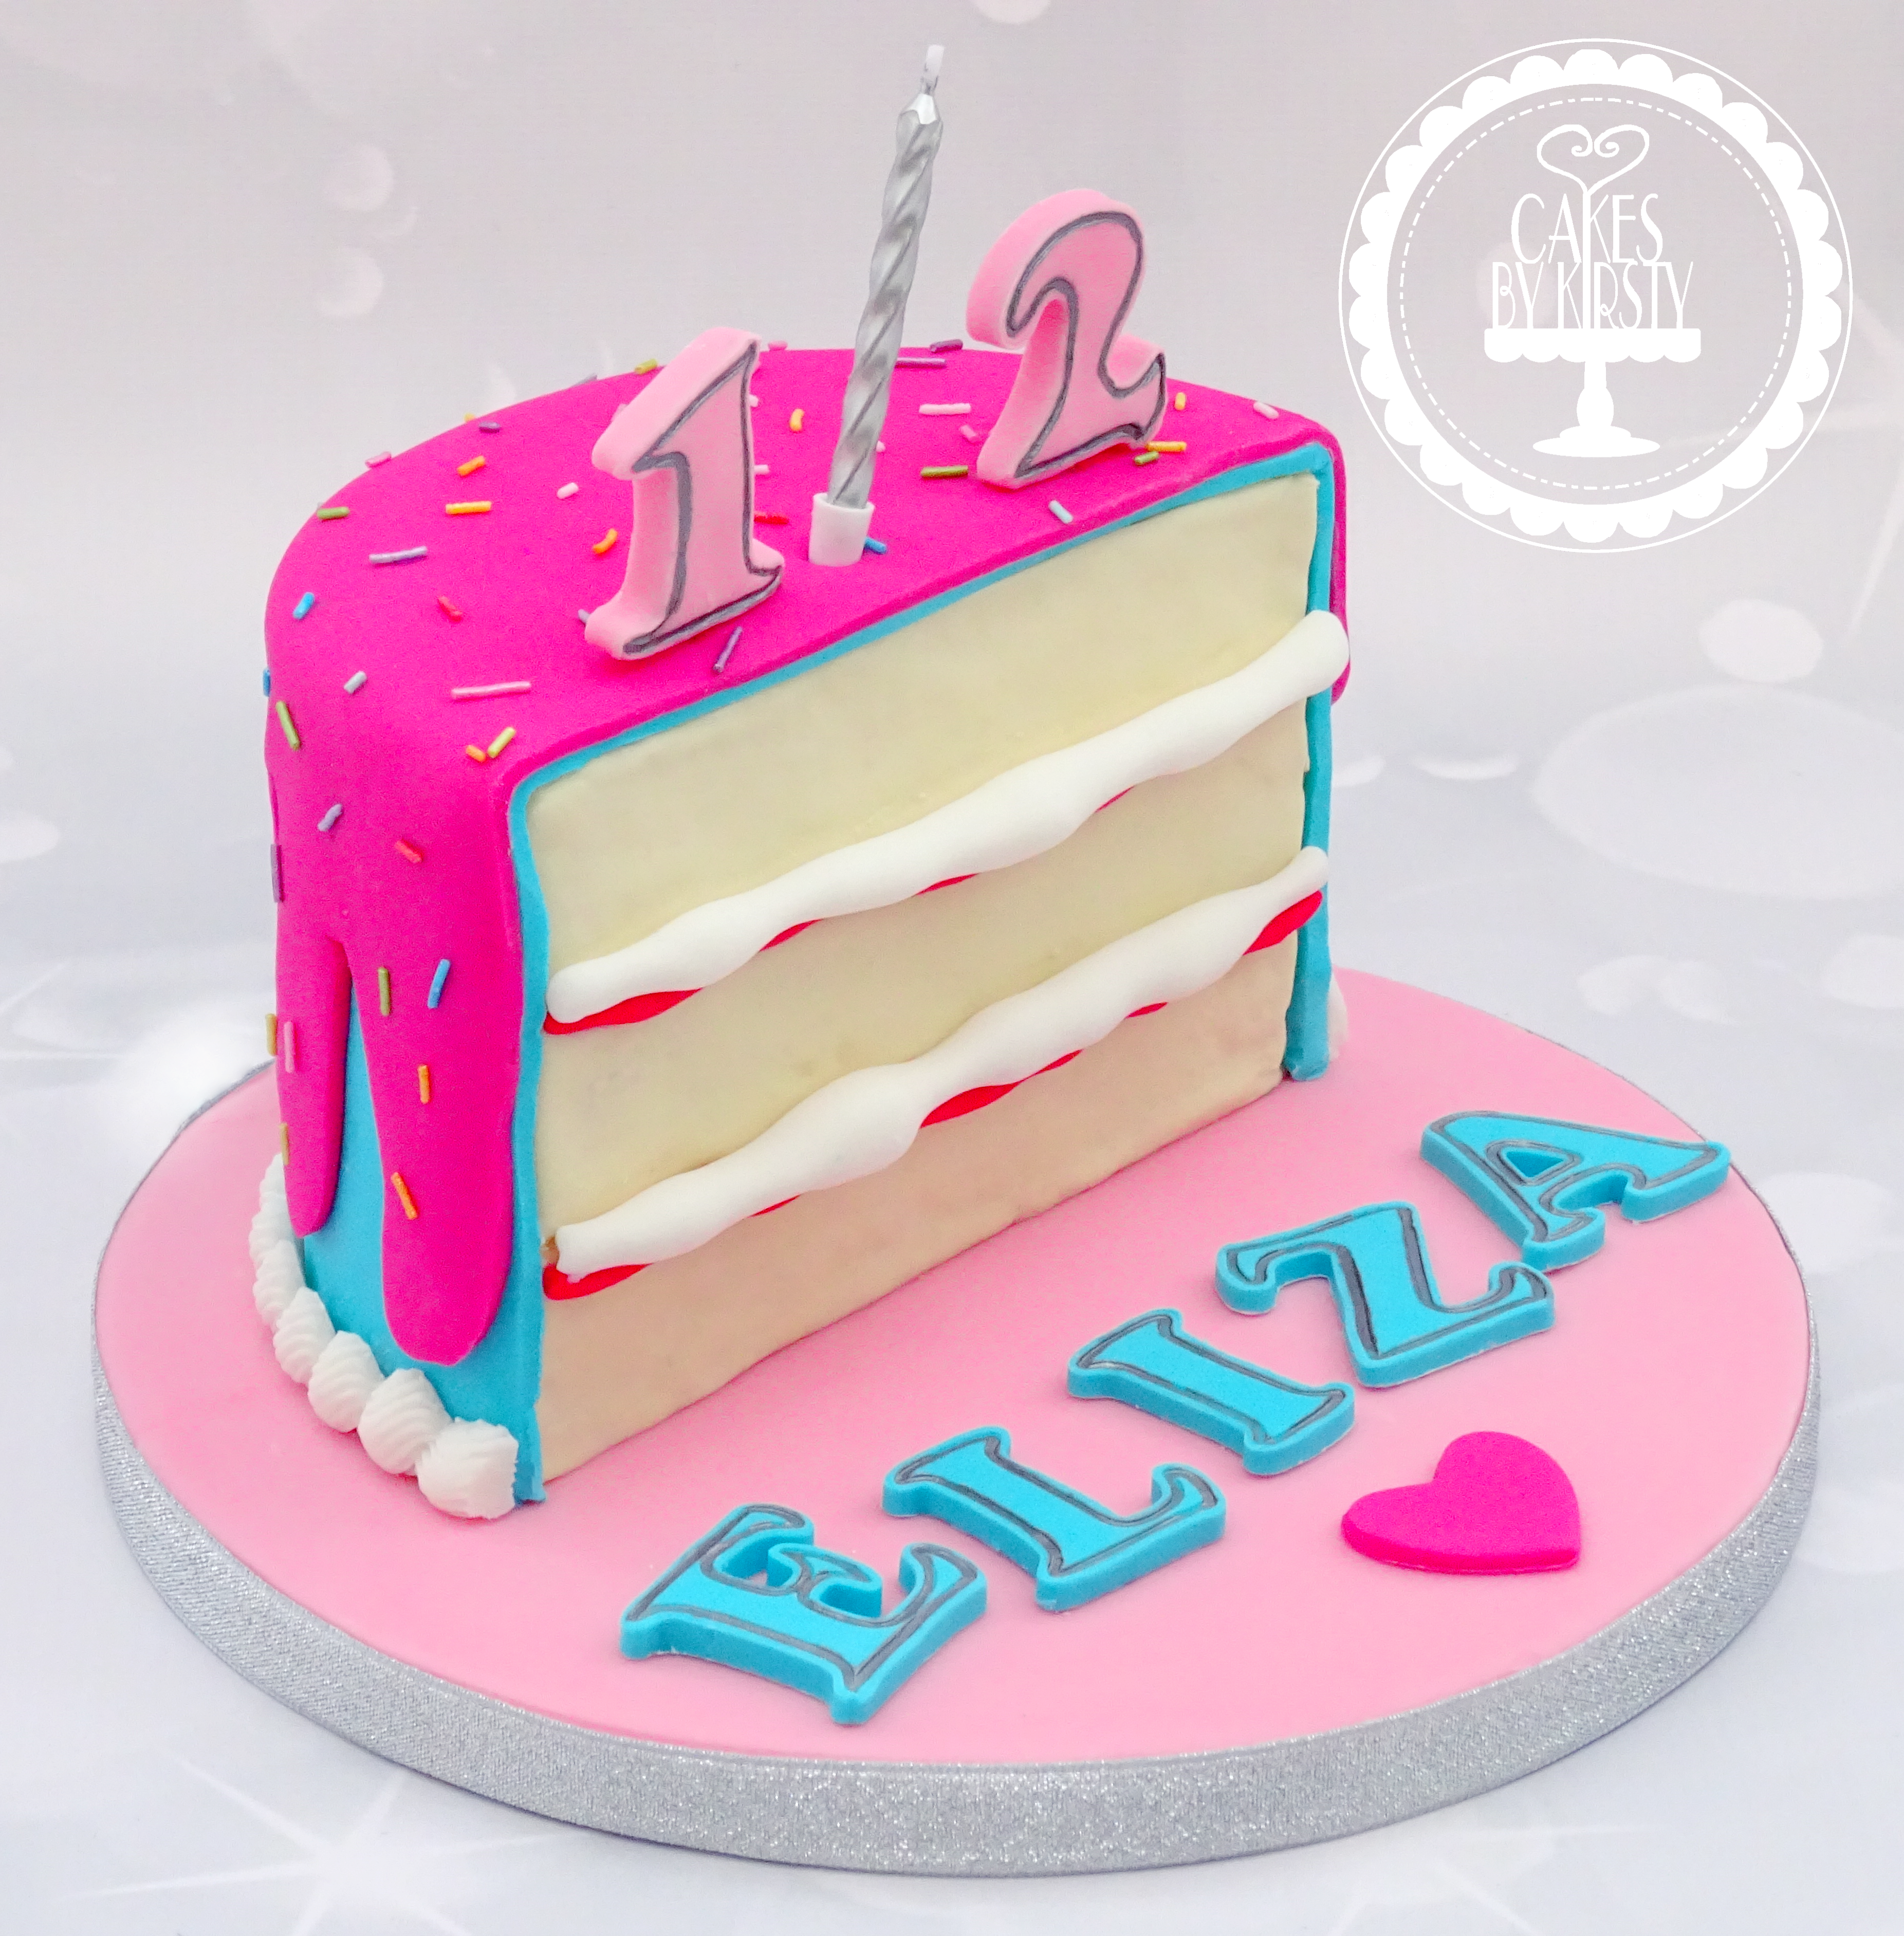 Astonishing Cakes By Kirsty Childrens Cakes Personalised Birthday Cards Paralily Jamesorg